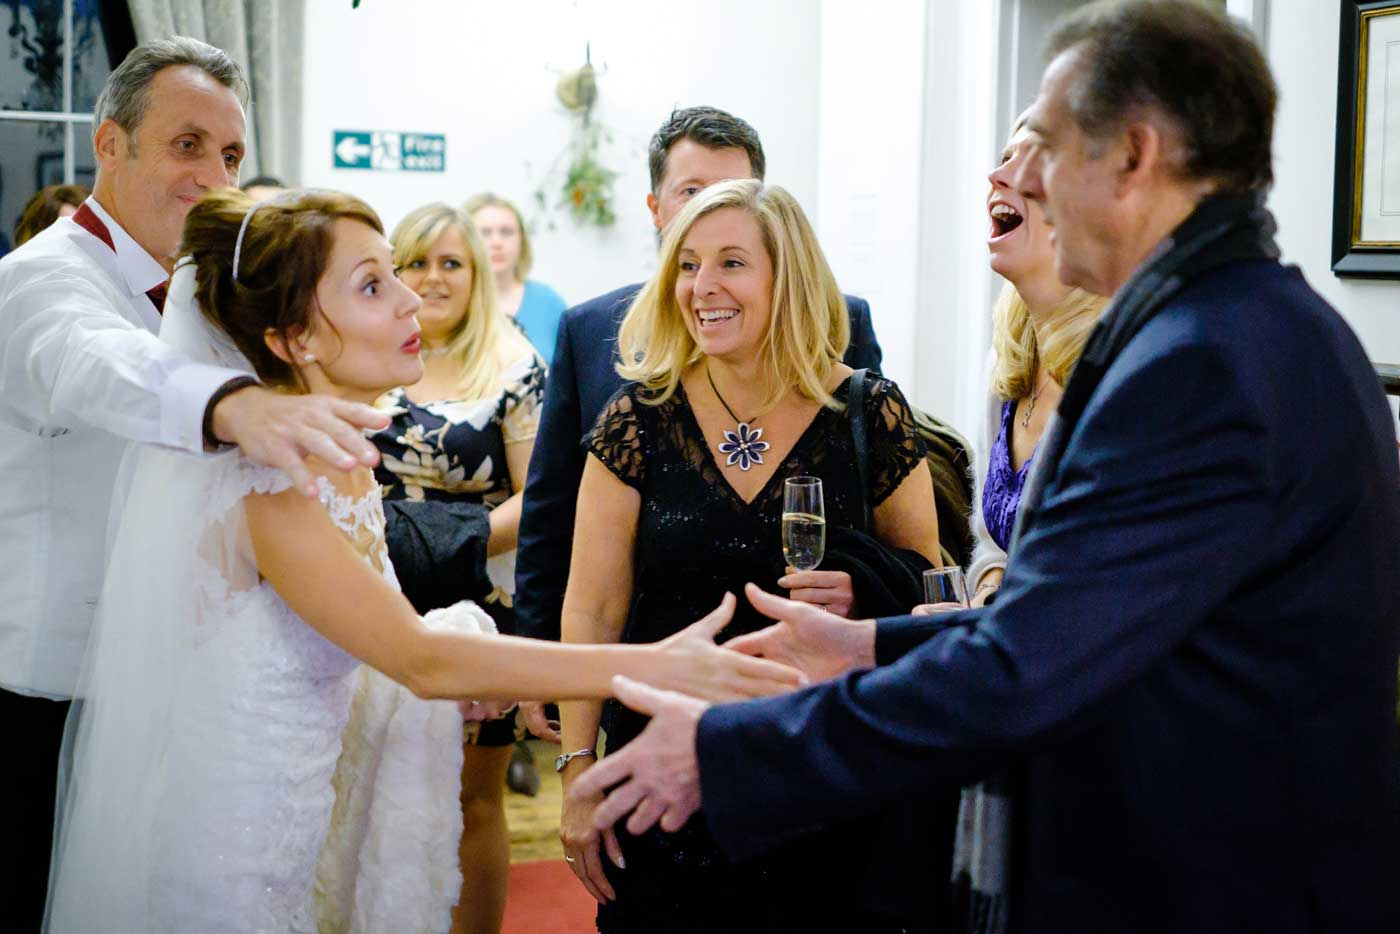 Bride and groom greeting evening guests at their Stanbrook Abbey wedding